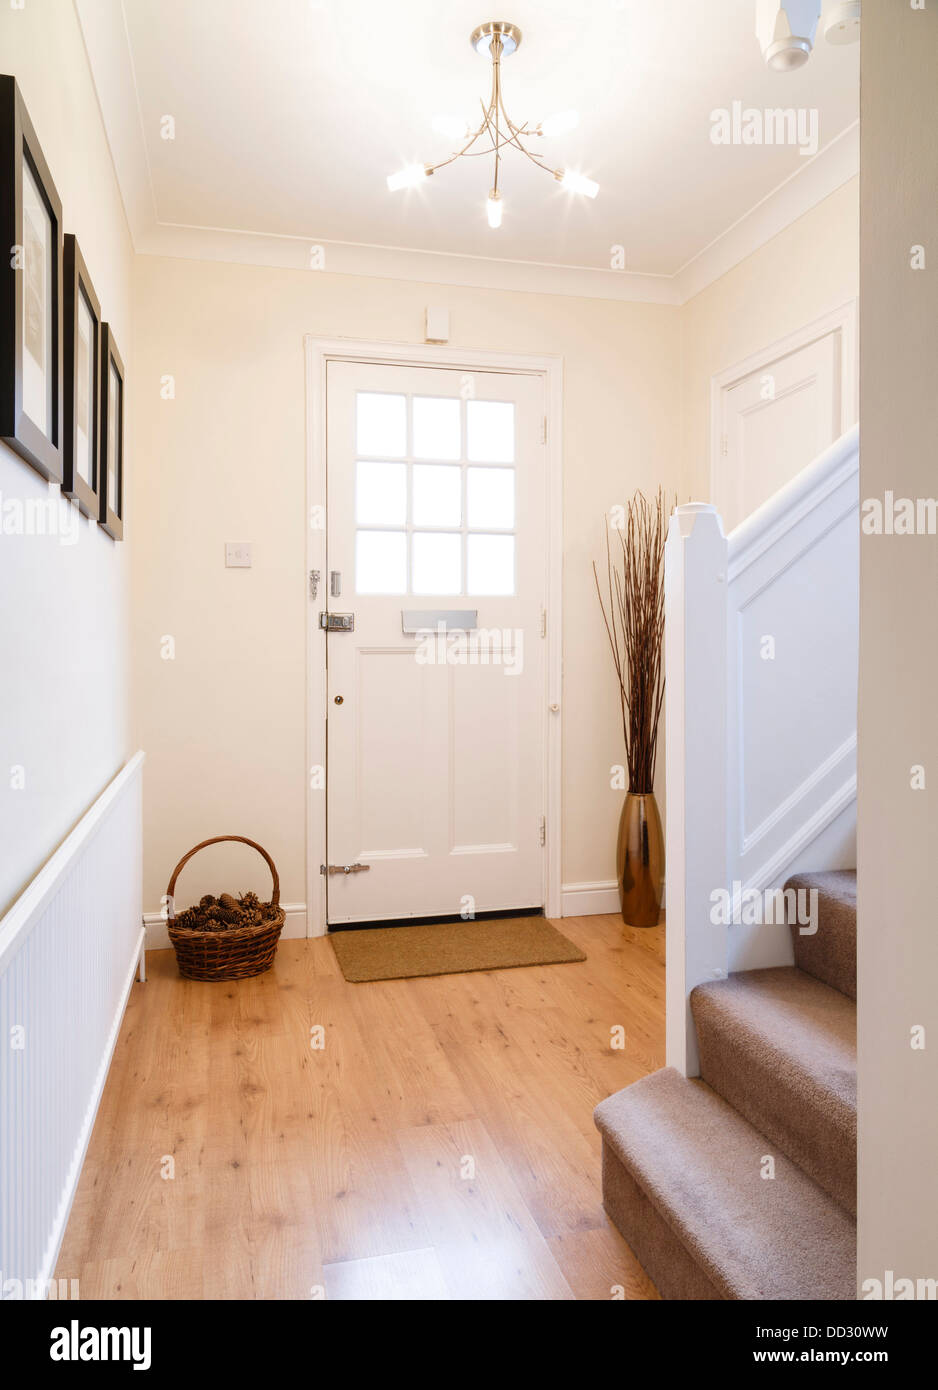 Modern hallway with a wooden floor and radiator - Stock Image